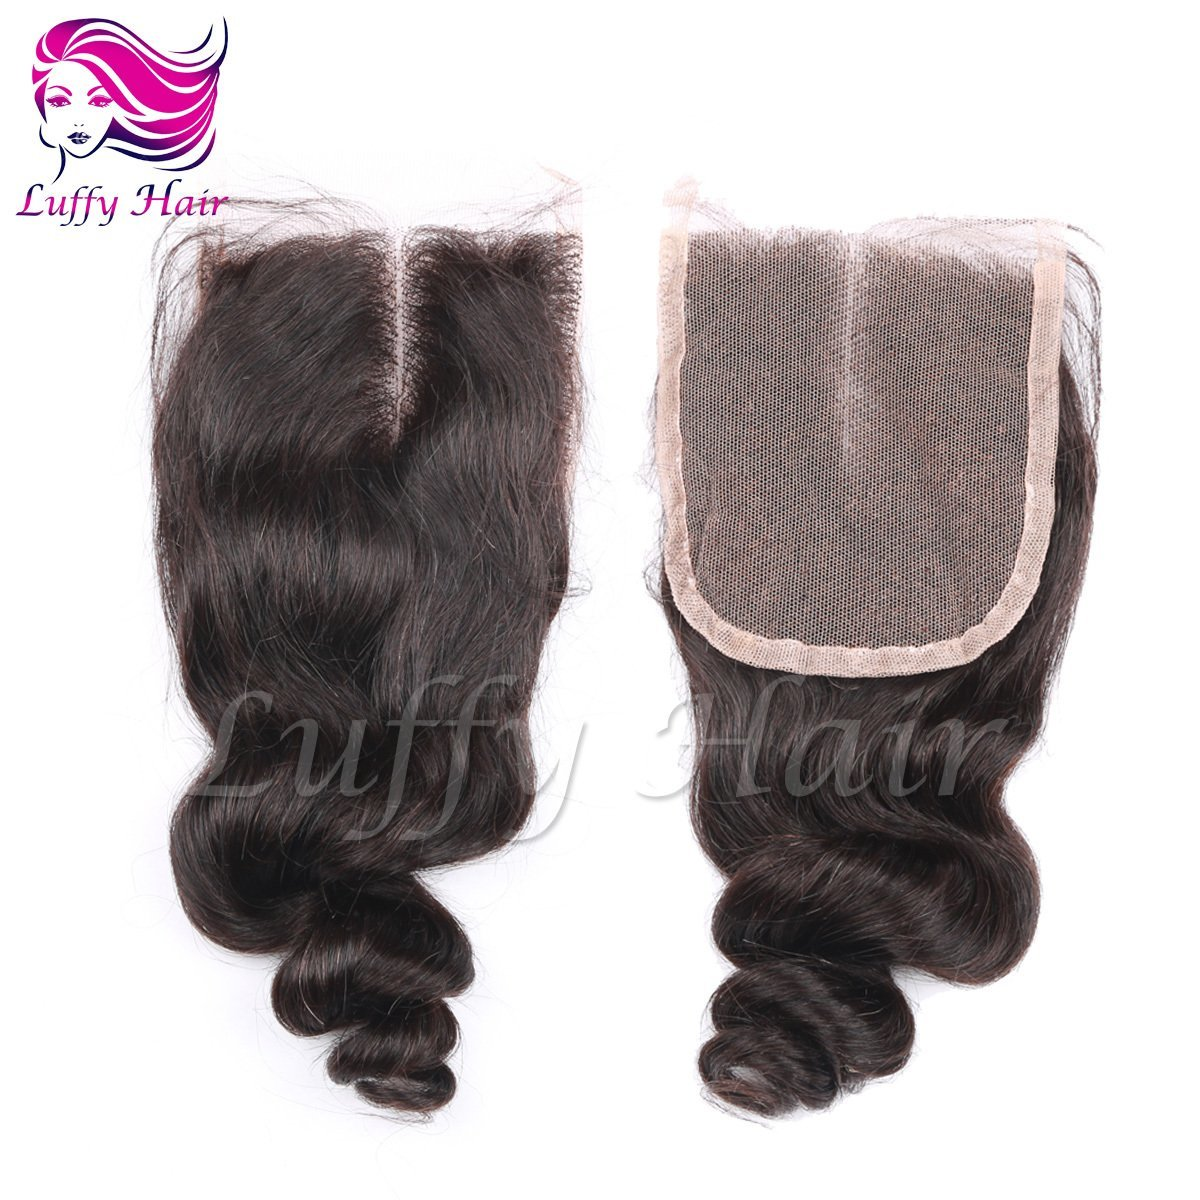 8A Virgin Human Hair 4x4 Body Wave 180% Density Lace Closure- KCL006